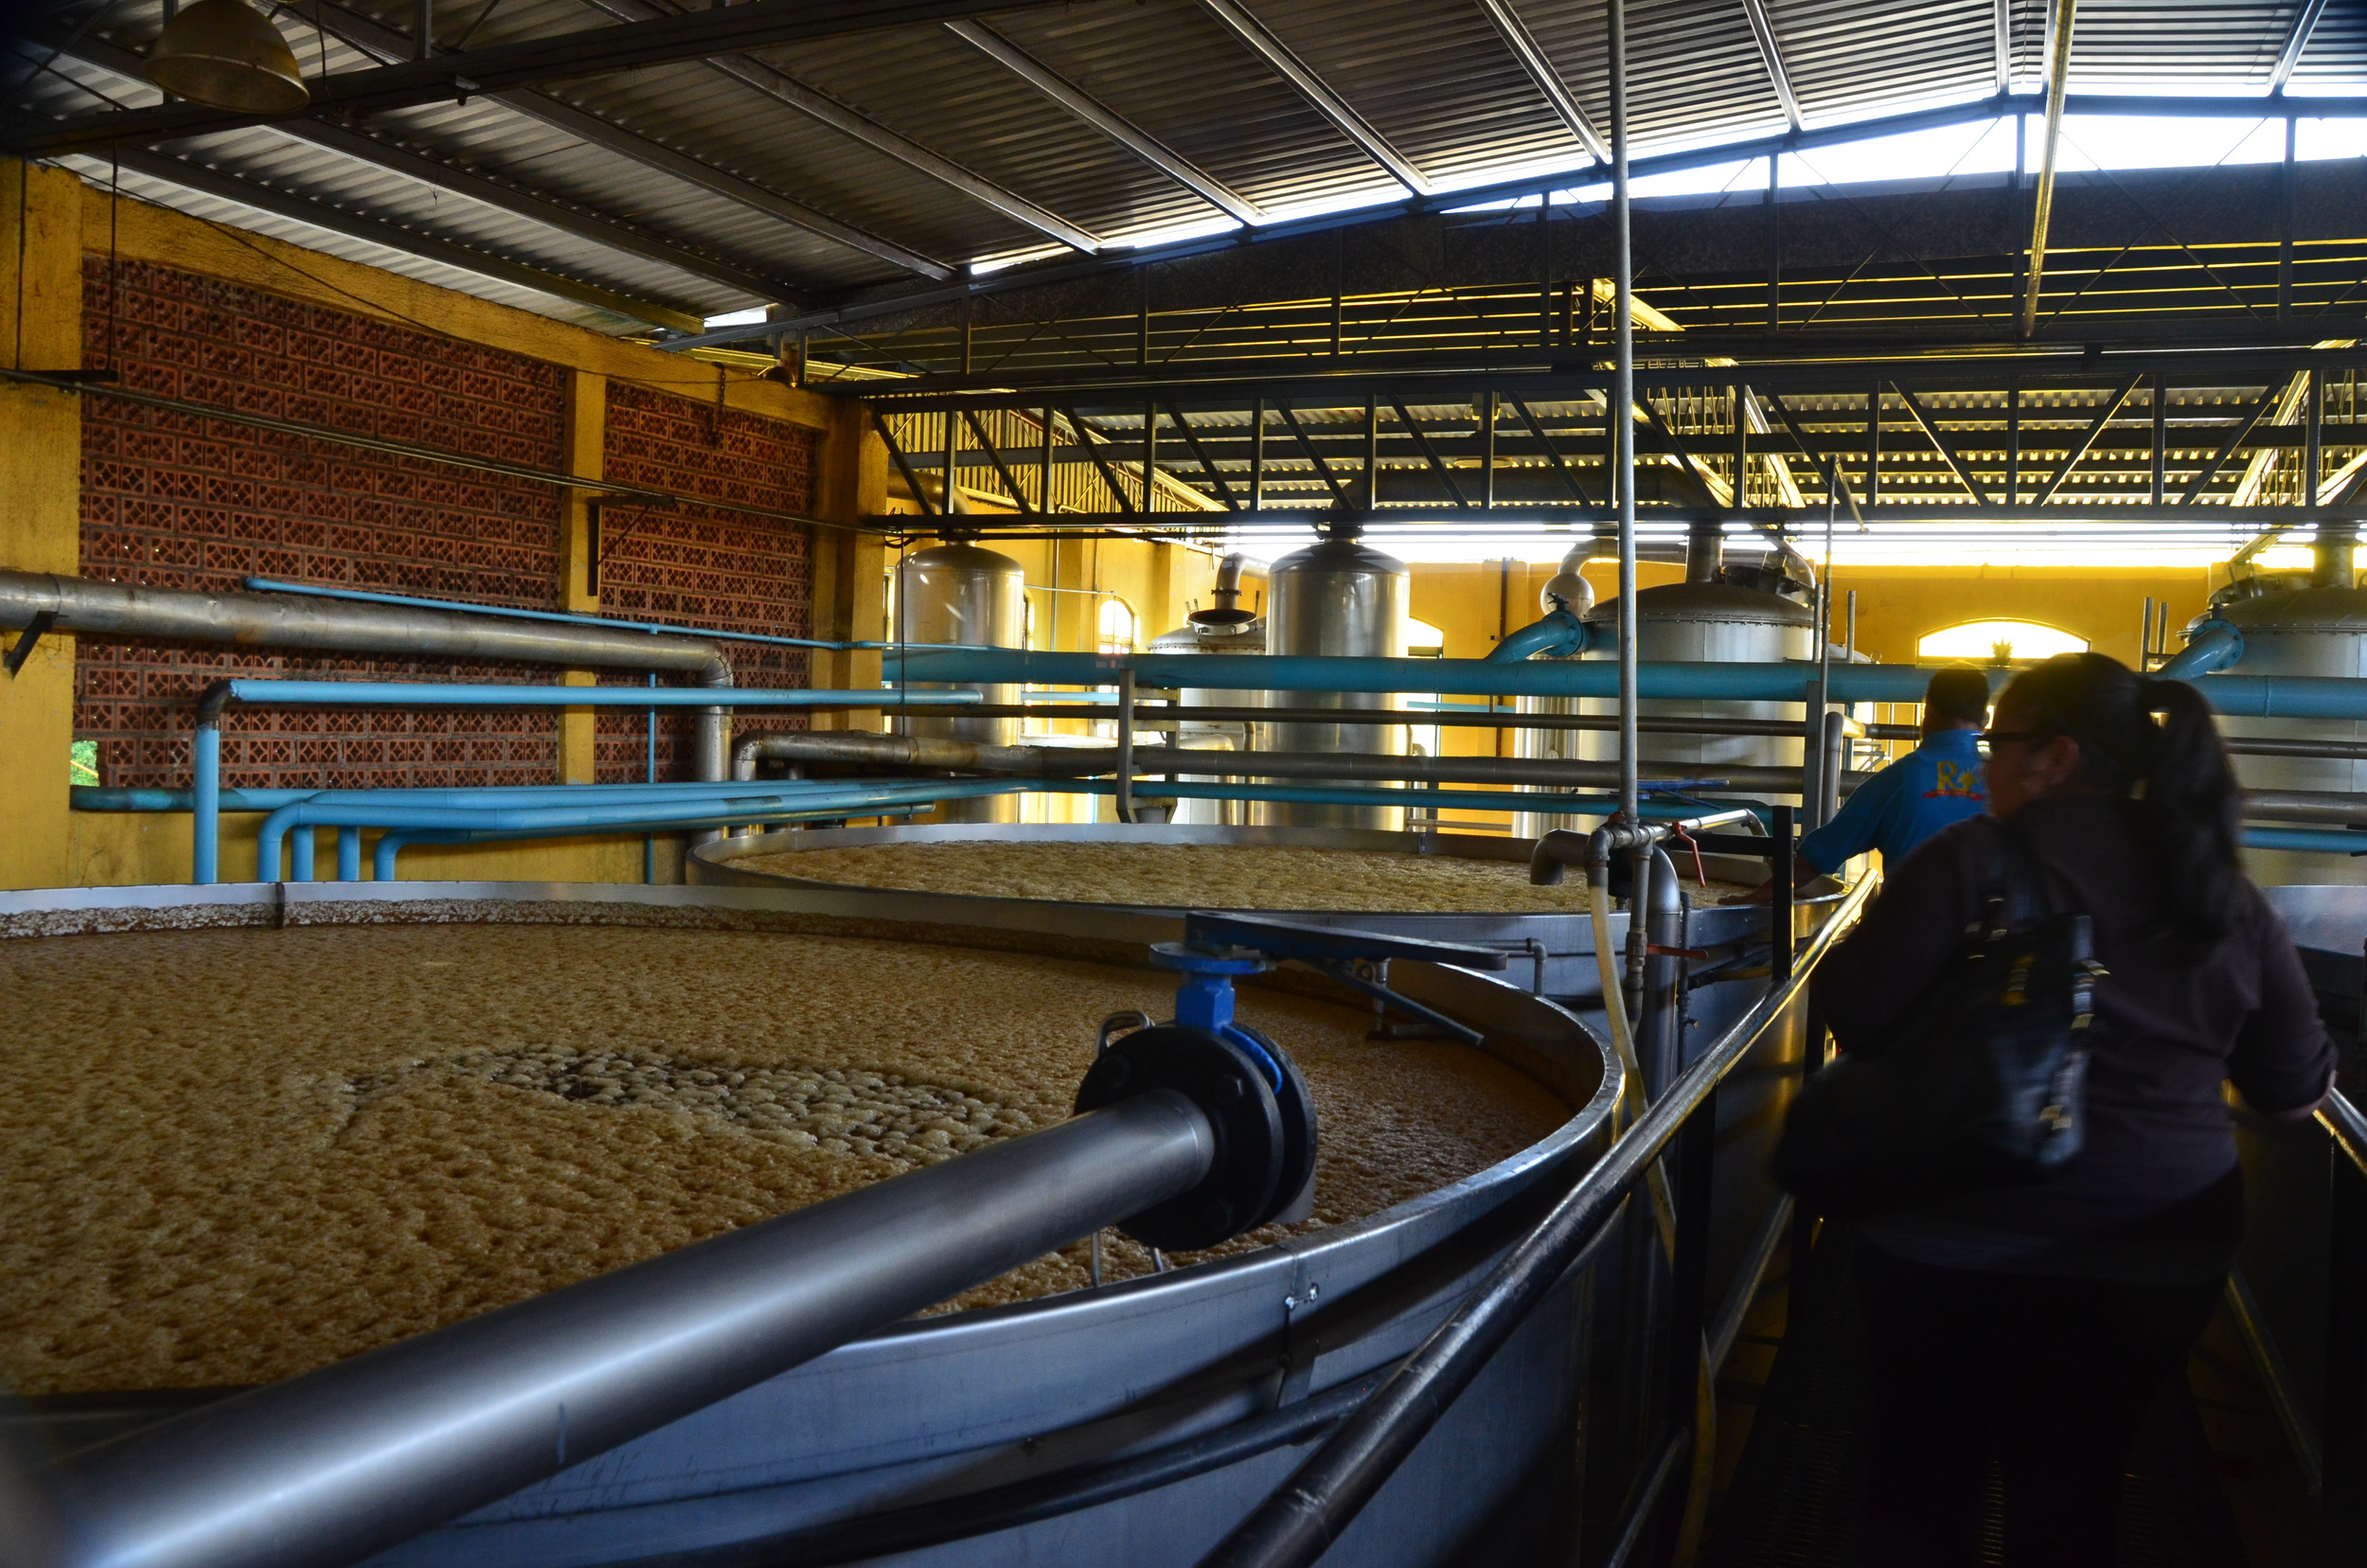 The fermentation vats…yes we stuck our fingers in there!